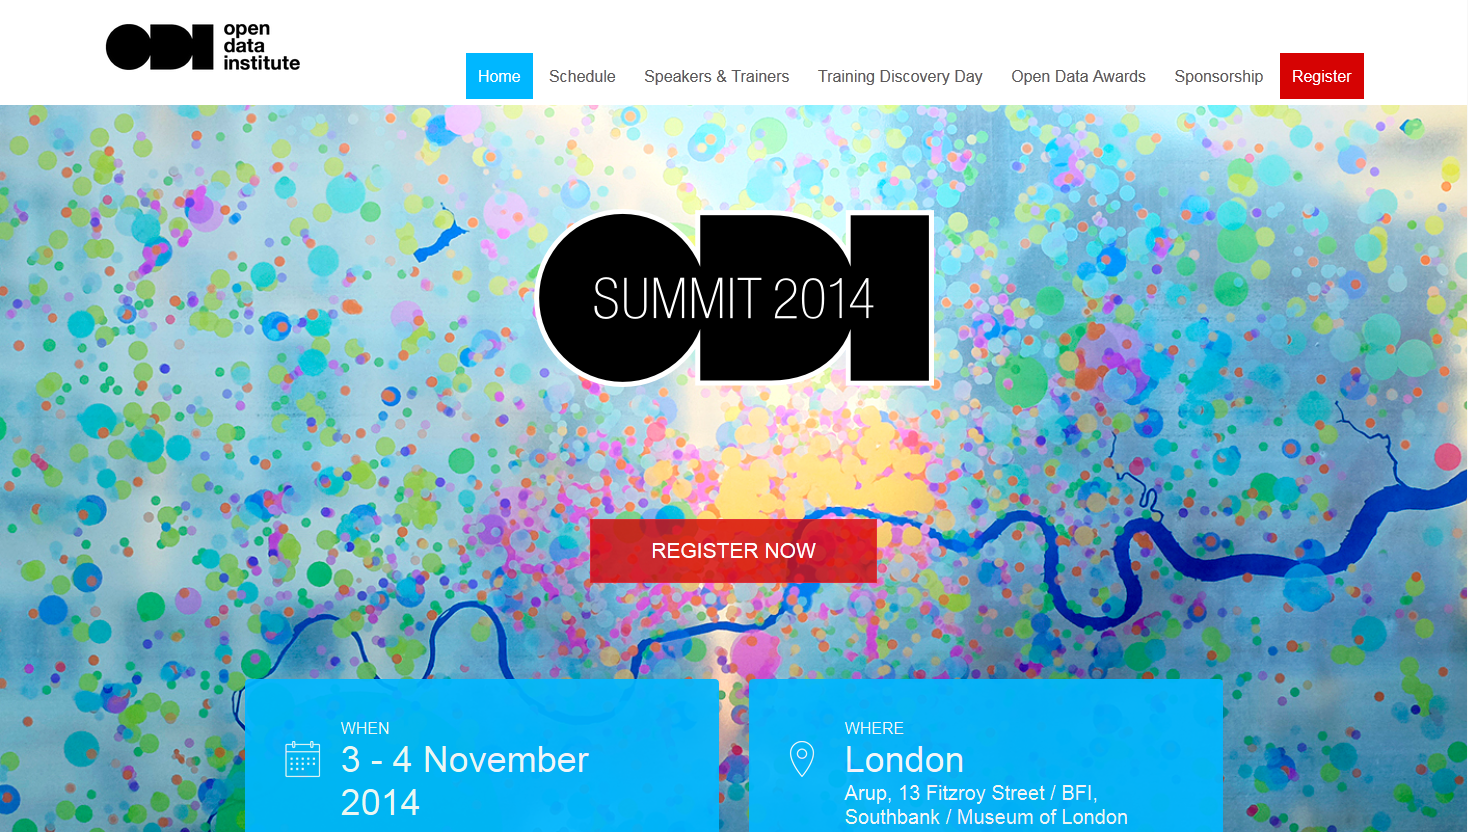 ODI Summit